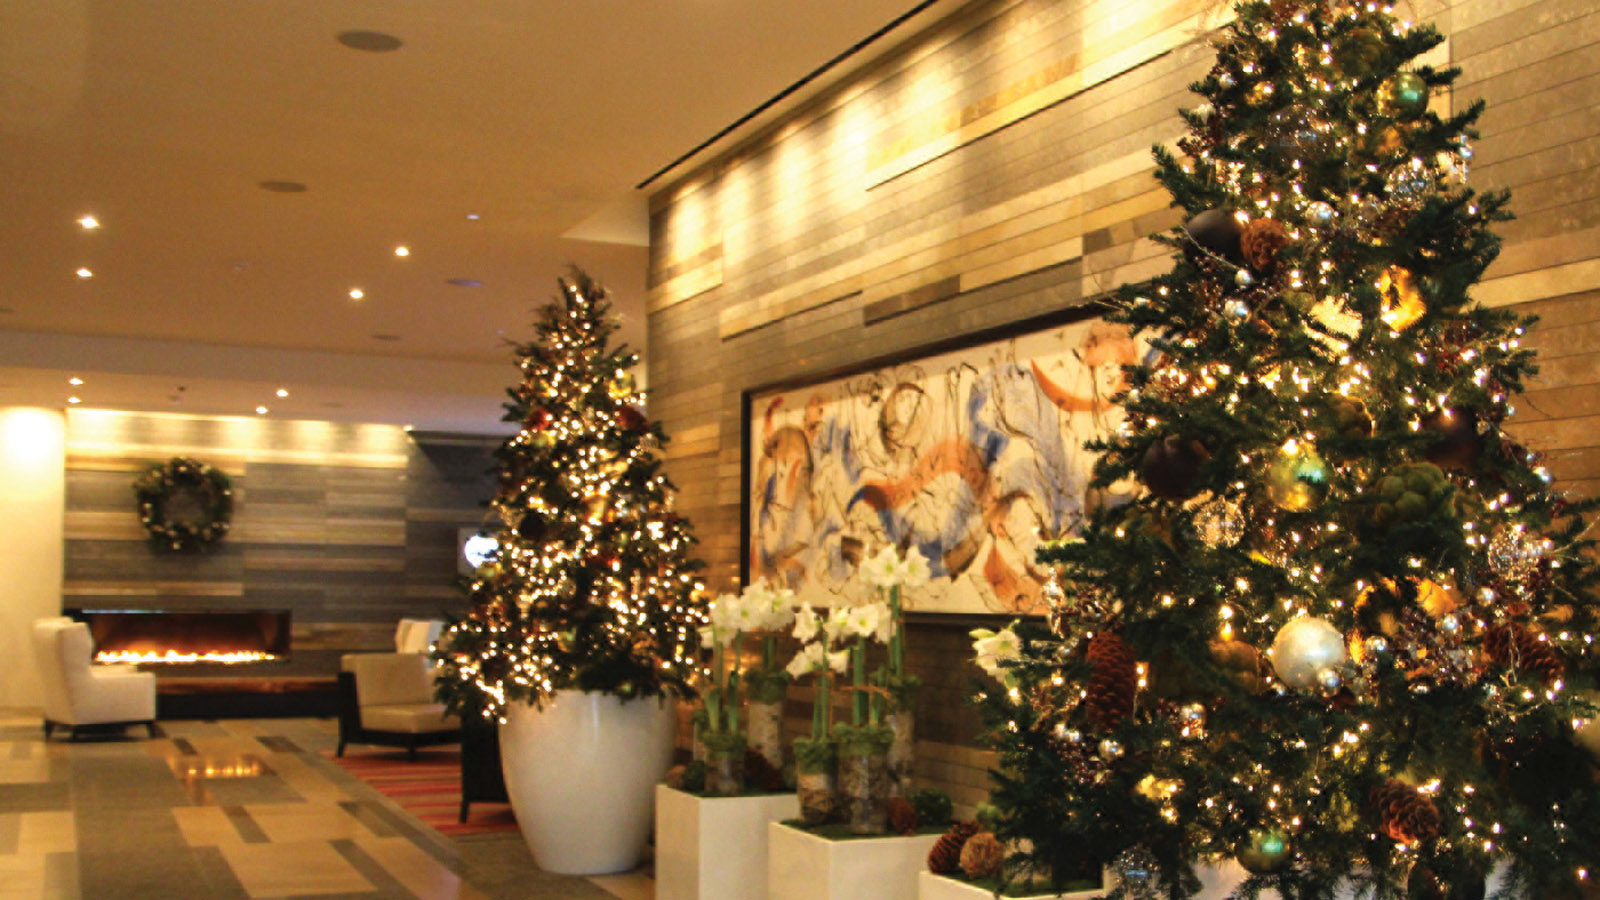 Ten reasons to visit four seasons hotel seattle this for 4 season decoration